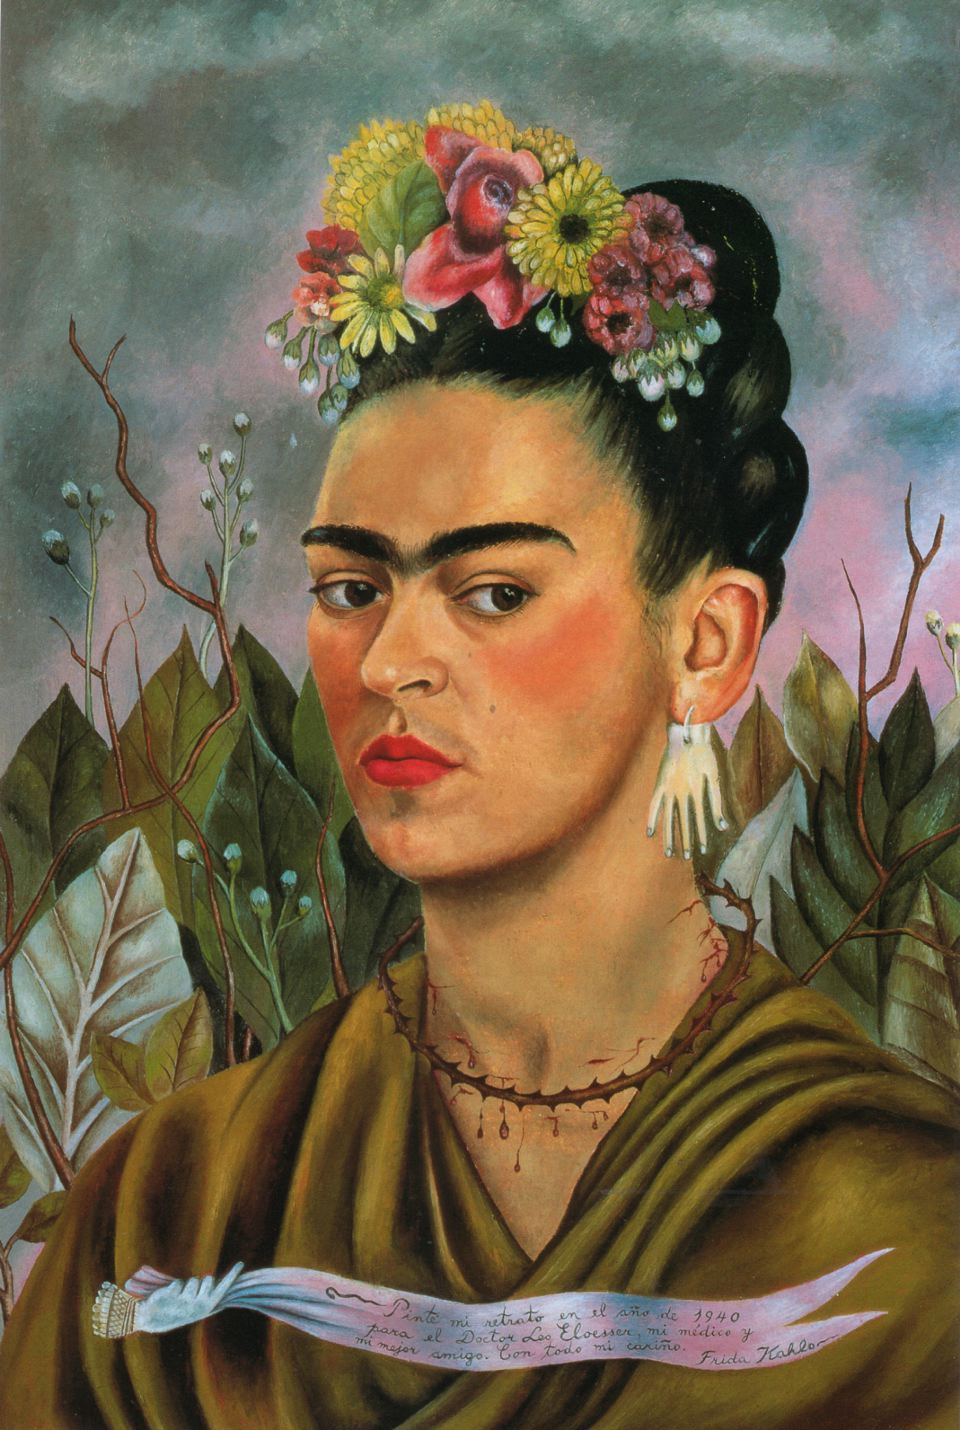 Frida kahlo self portrait dedicated to dr eloesser 1940 the